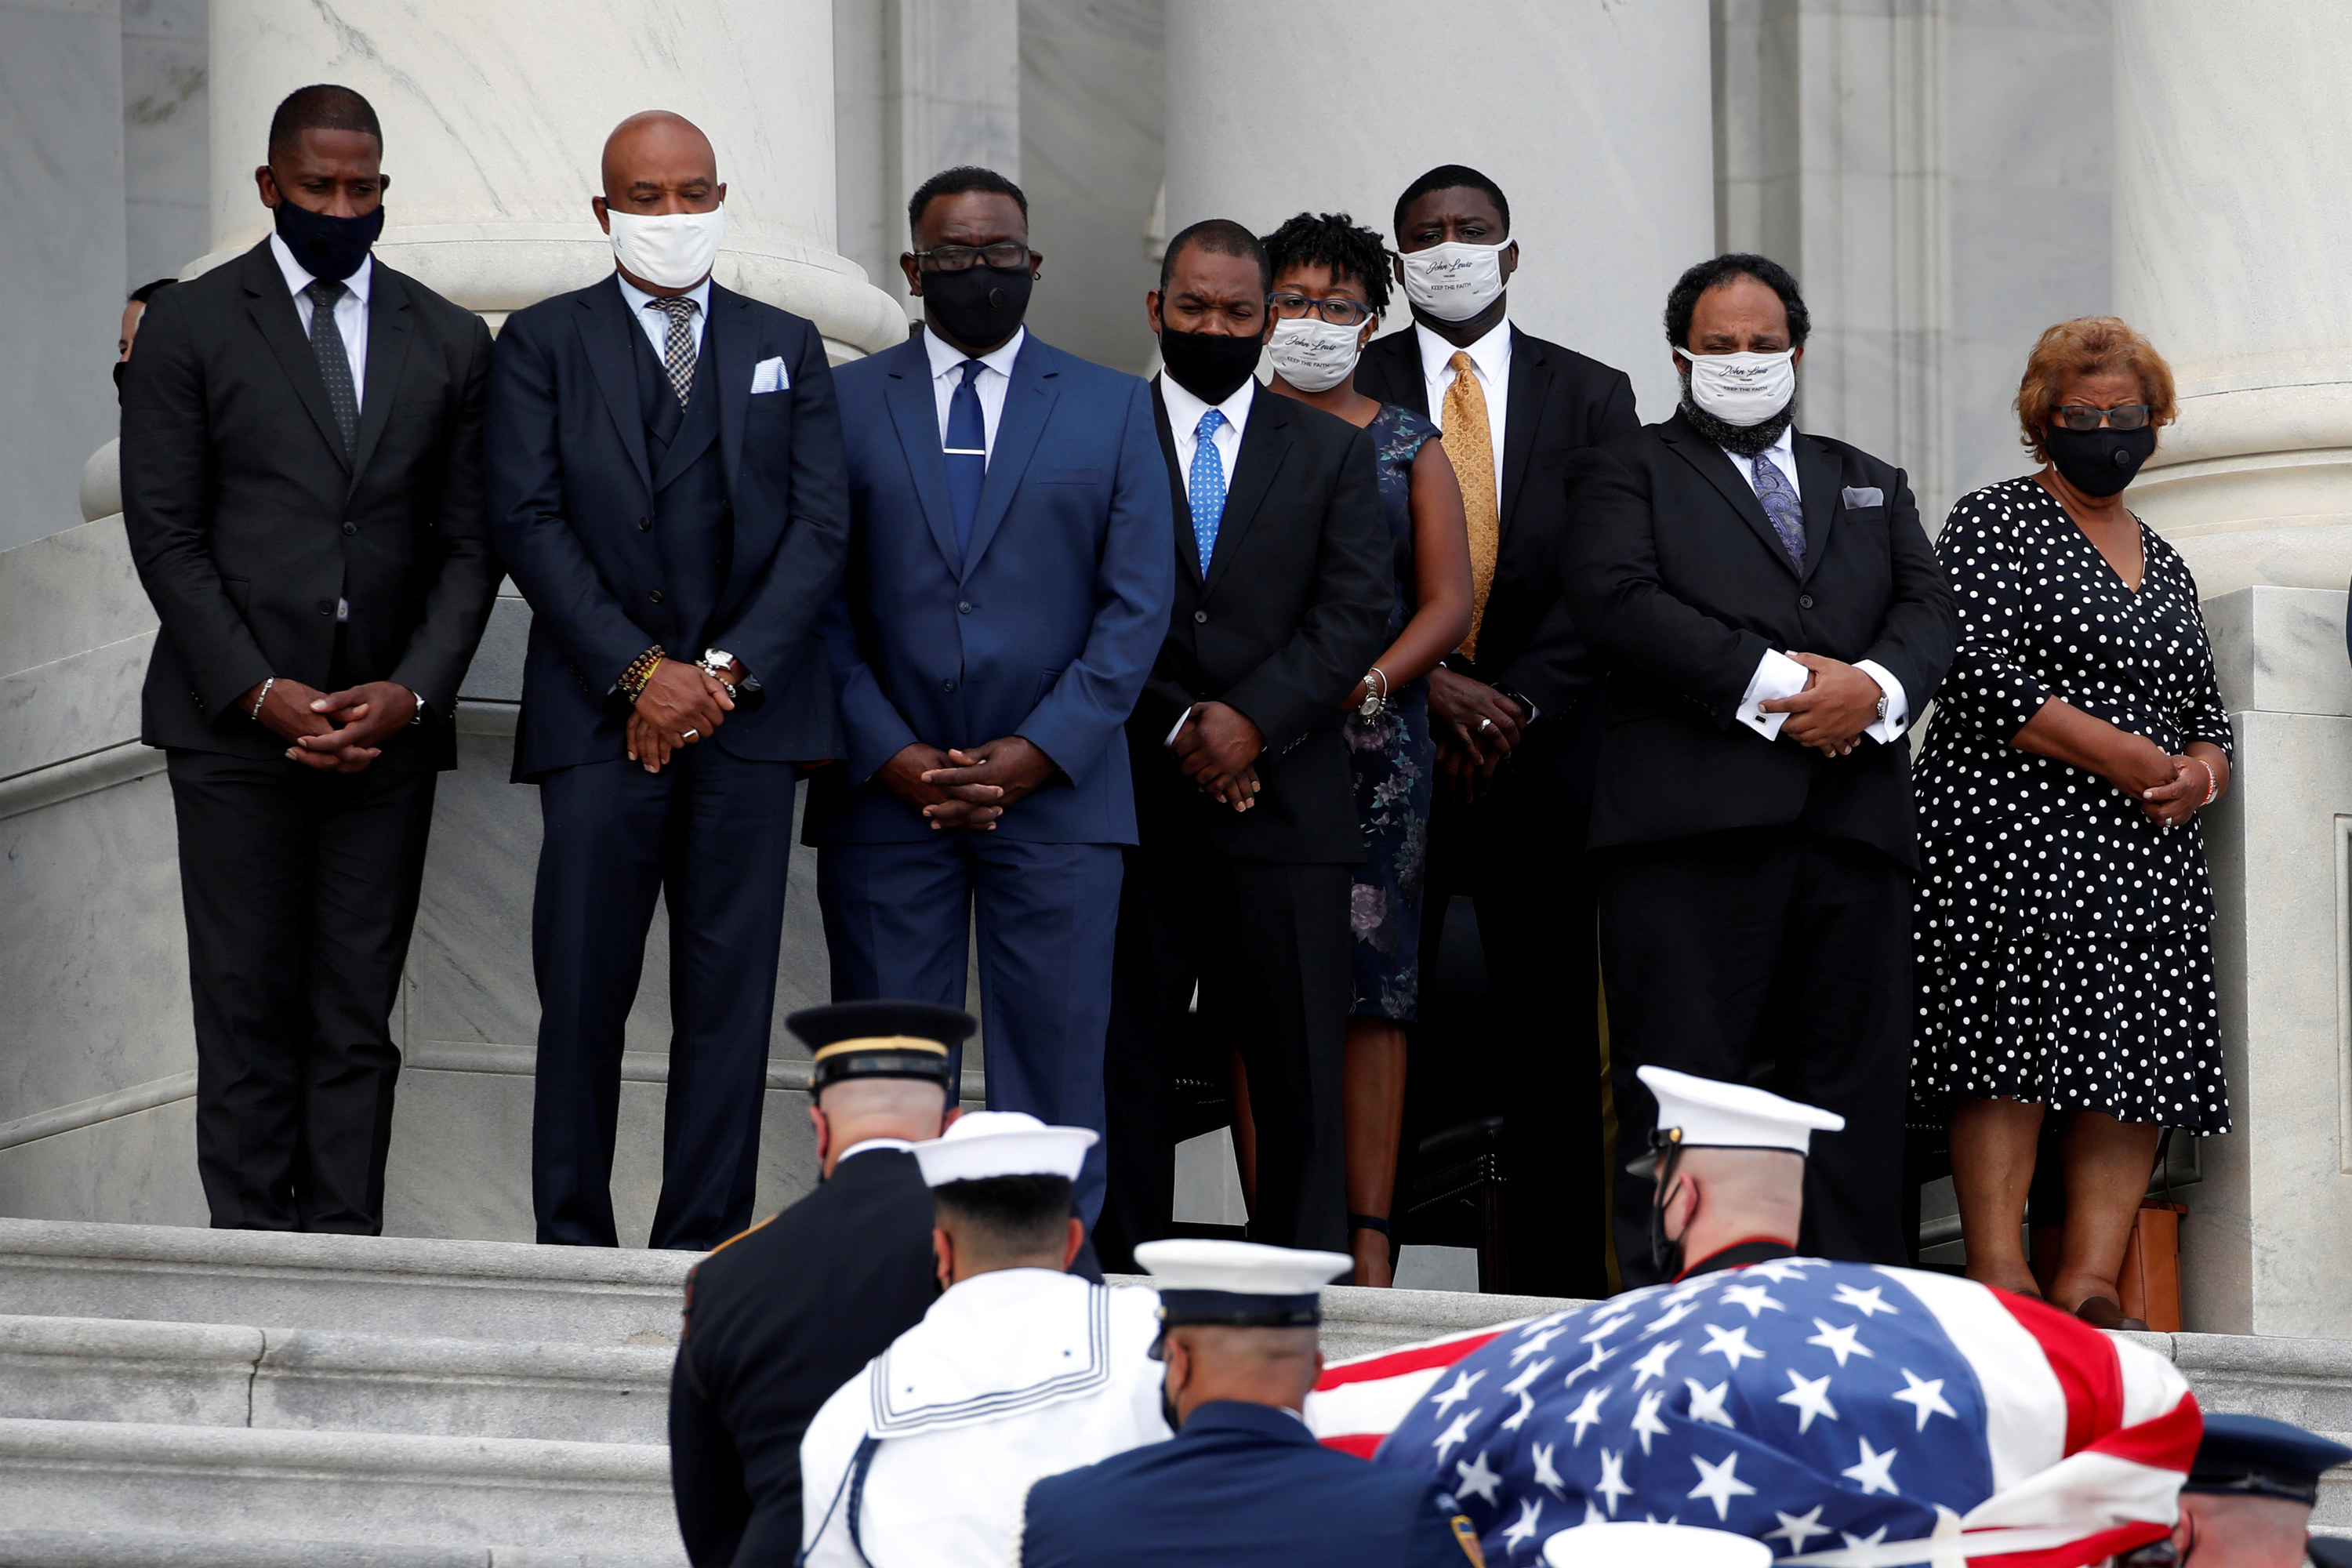 Several people wearing masks watch as a casket is carried by members of the military up a staircase